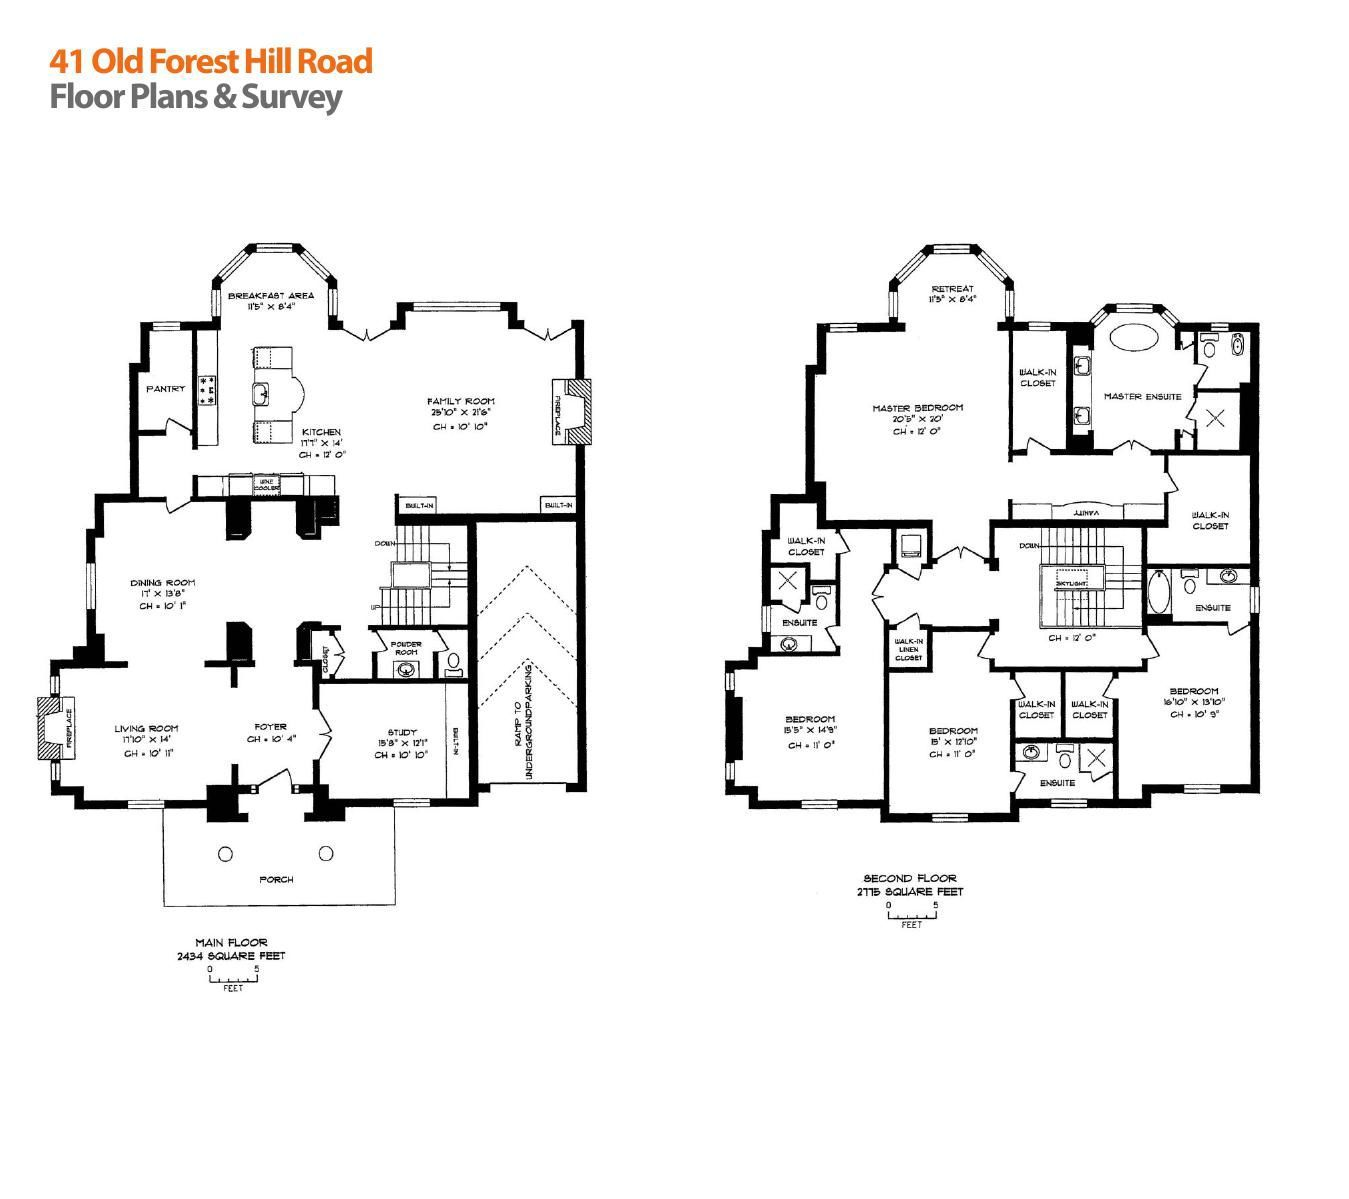 41 forest hill feature booklet 50 pages online floor plans 41 forest hill feature booklet 50 pages online malvernweather Gallery